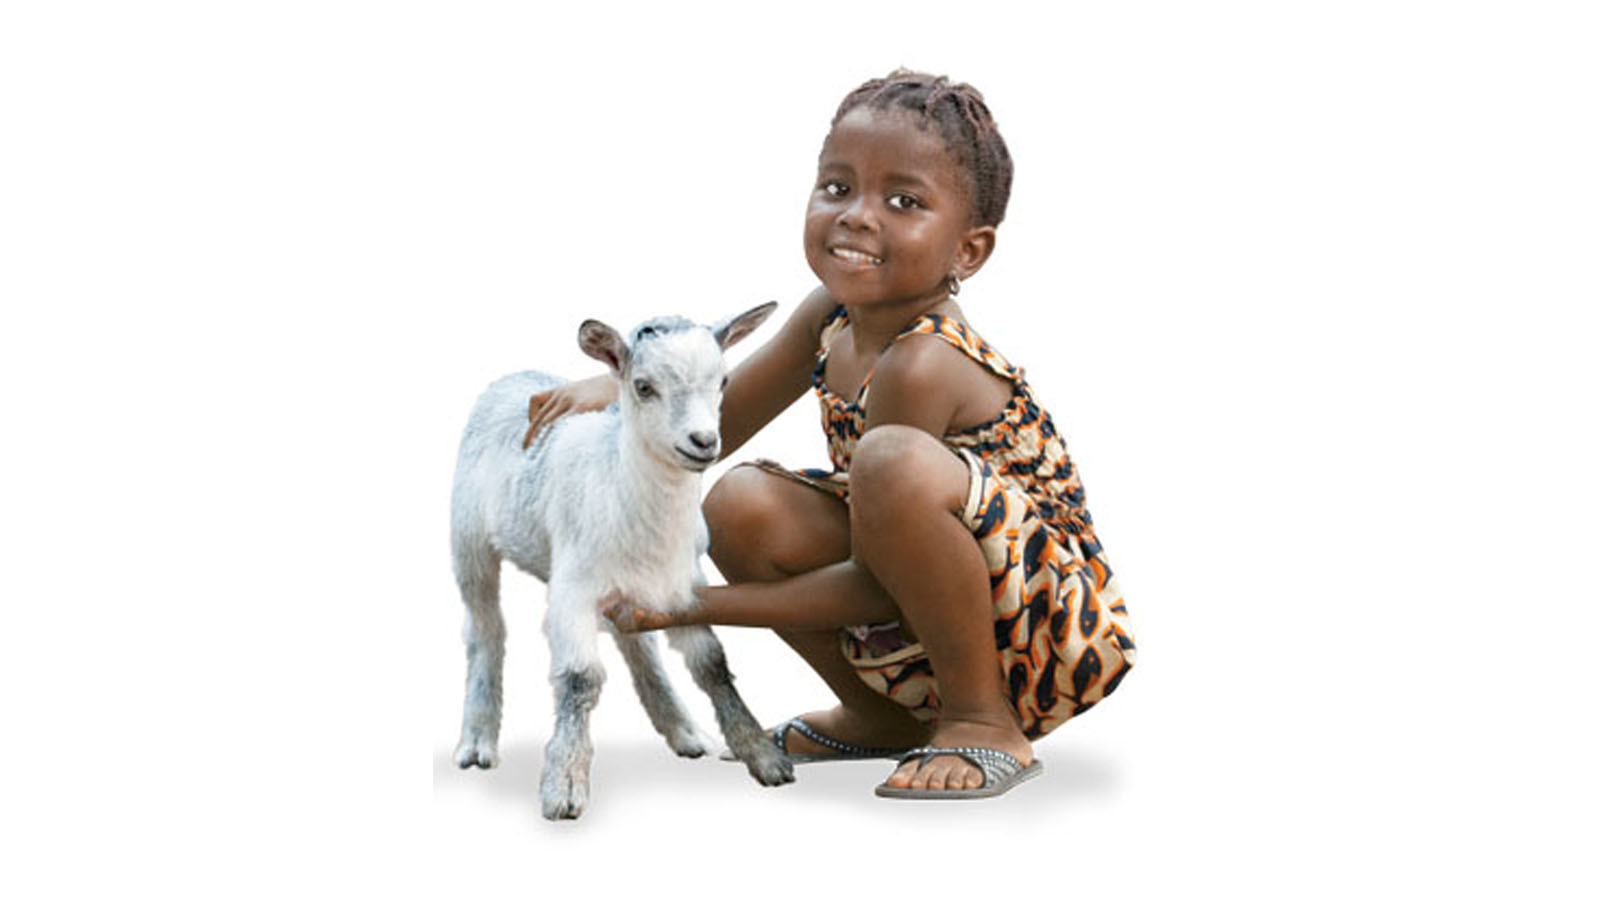 You can gift animals to families in need via Worldvision.